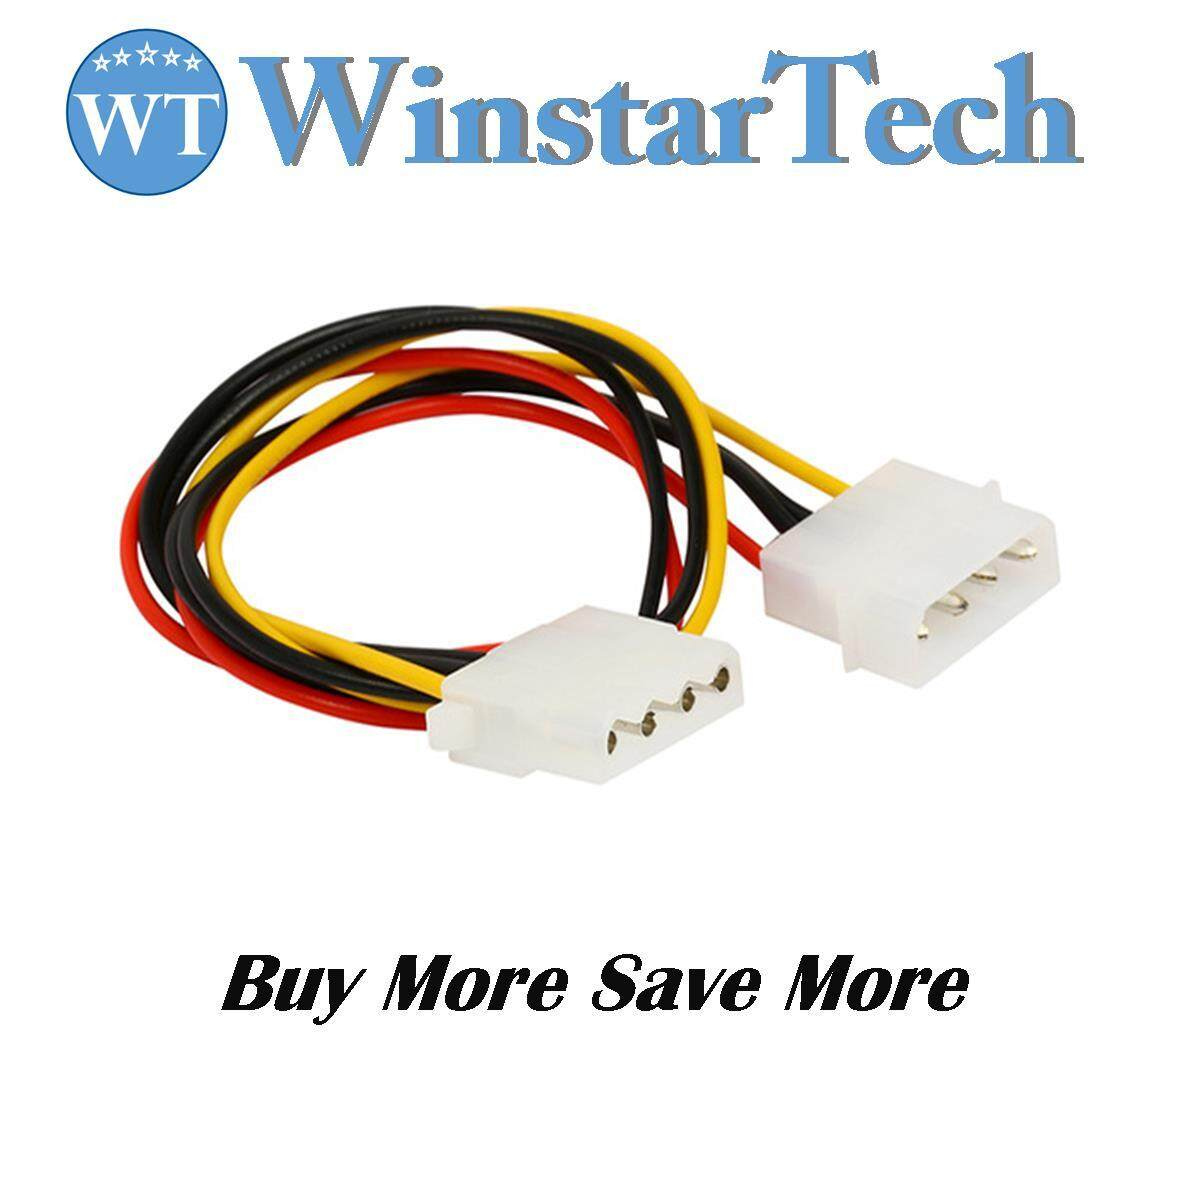 Features 2pcs 4pin Ide Molex To 4 Port 3pin Cooling Fan And Power Cables Large Male Female Extension Cable For Pc